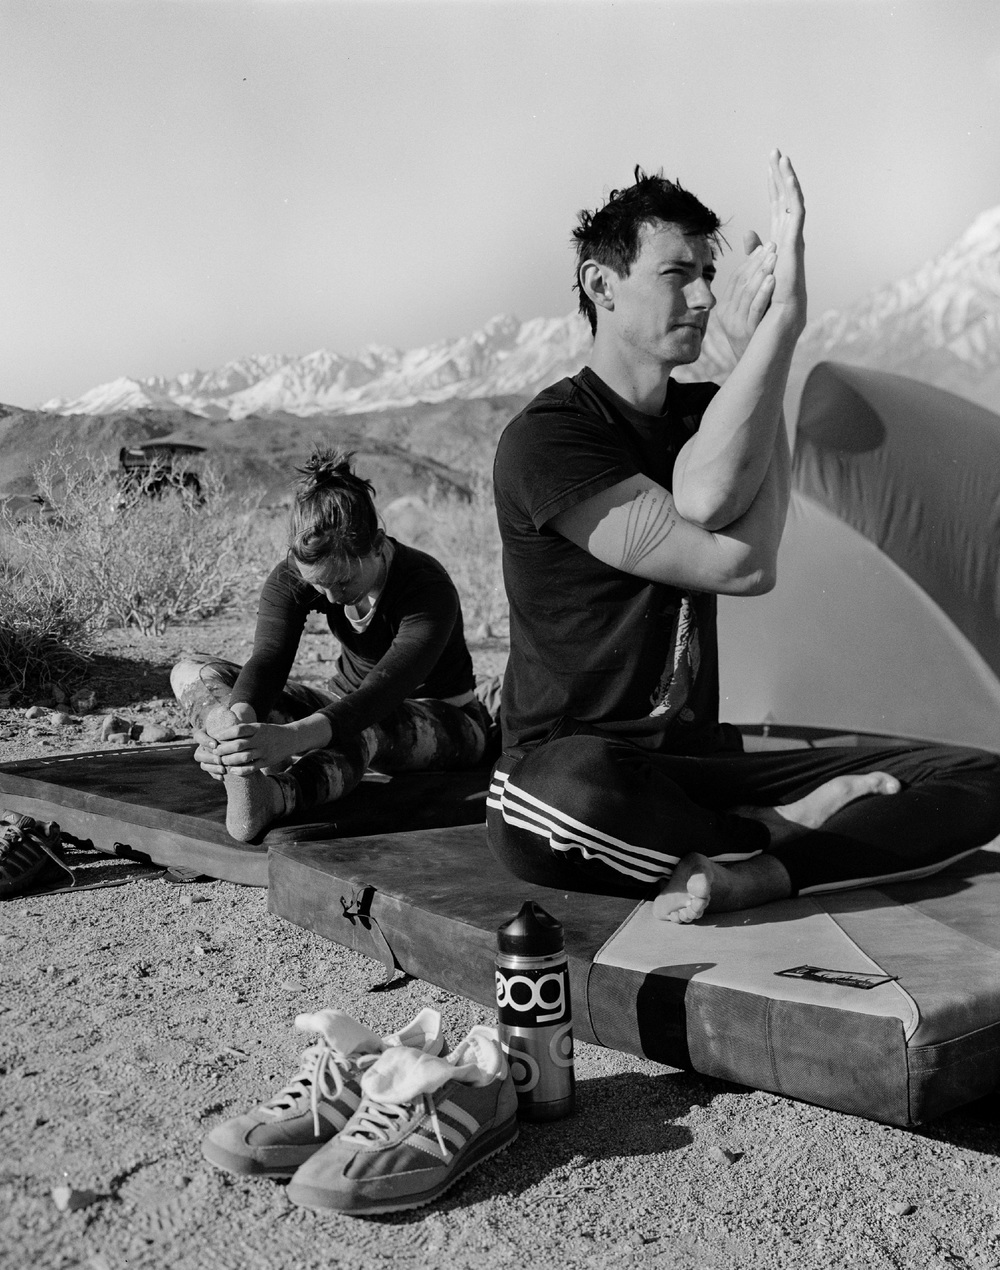 Lauren and Erik in the midst of a stretch and yoga session at our campground, with mountains looming in the background.